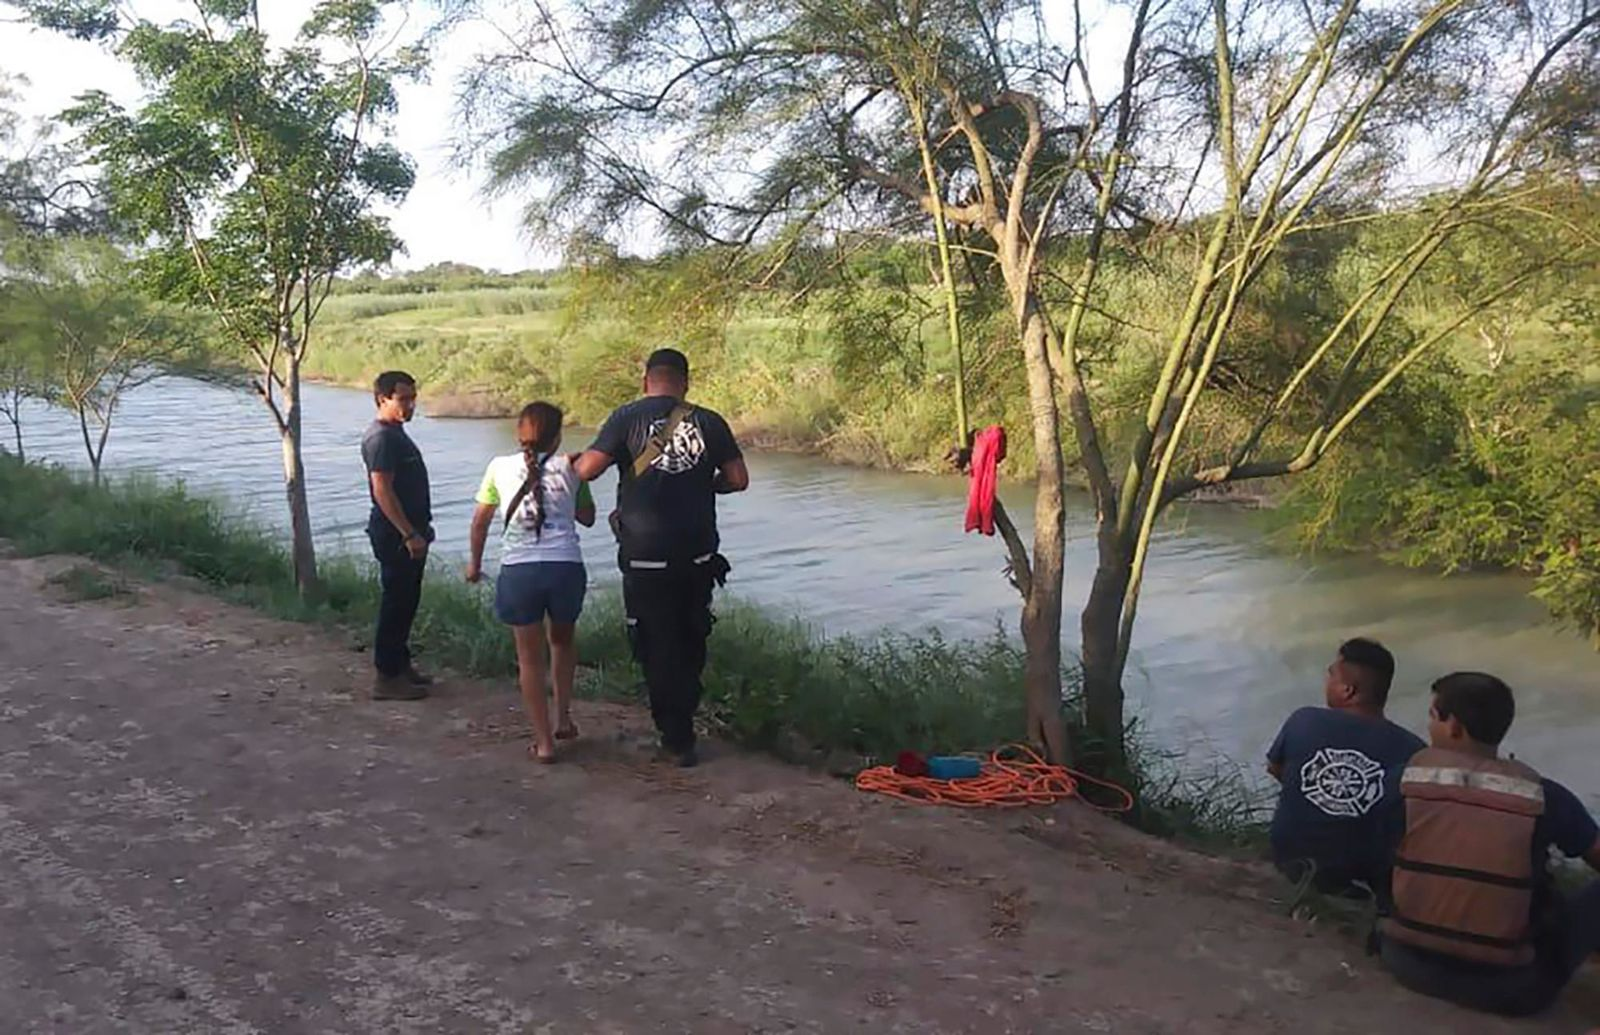 Tania Vanessa Ávalos of El Salvador, center left, is assisted by Mexican authorities after her husband and nearly two-year-old daughter were swept away by the current while trying to cross the Rio Grande to Brownsville, Texas, in Matamoros, Mexico, Sunday, June 23, 2019. Their bodies, the toddler still tucked into her father's shirt with her arm loosely draped around him, were discovered Monday morning several hundred yards from where they had tried to cross. (AP Photo/Julia Le Duc)